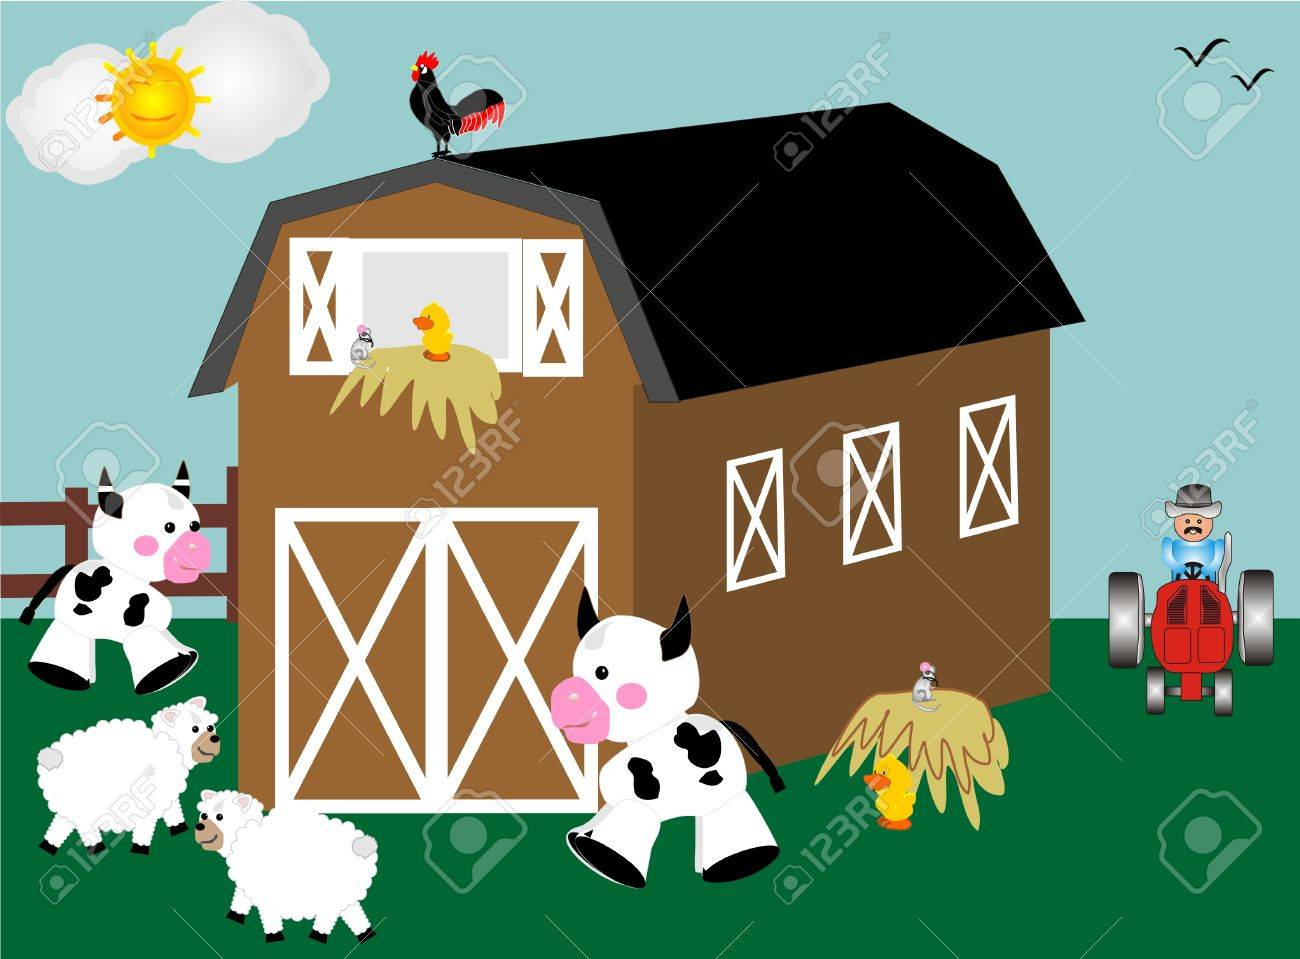 barn, tractor and farm animals in Barnyard Stock Vector - 4096326